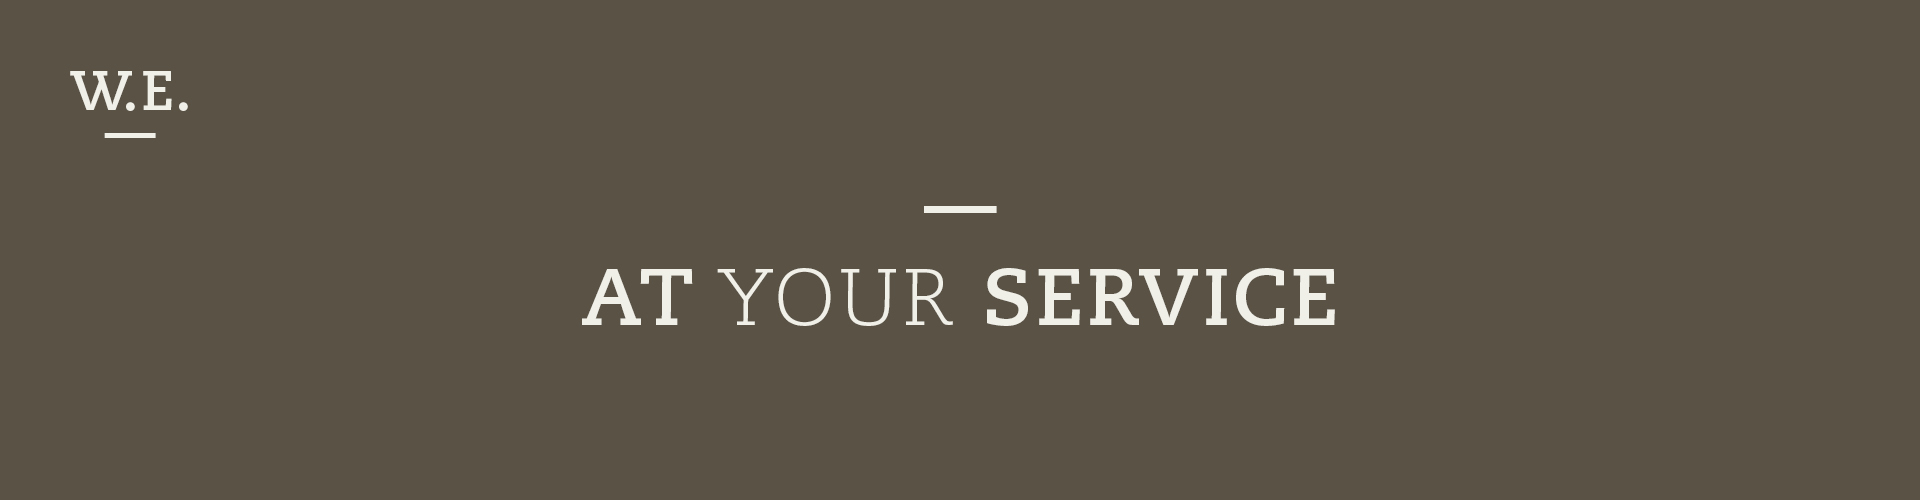 WE_atyourservice_braun-schmal